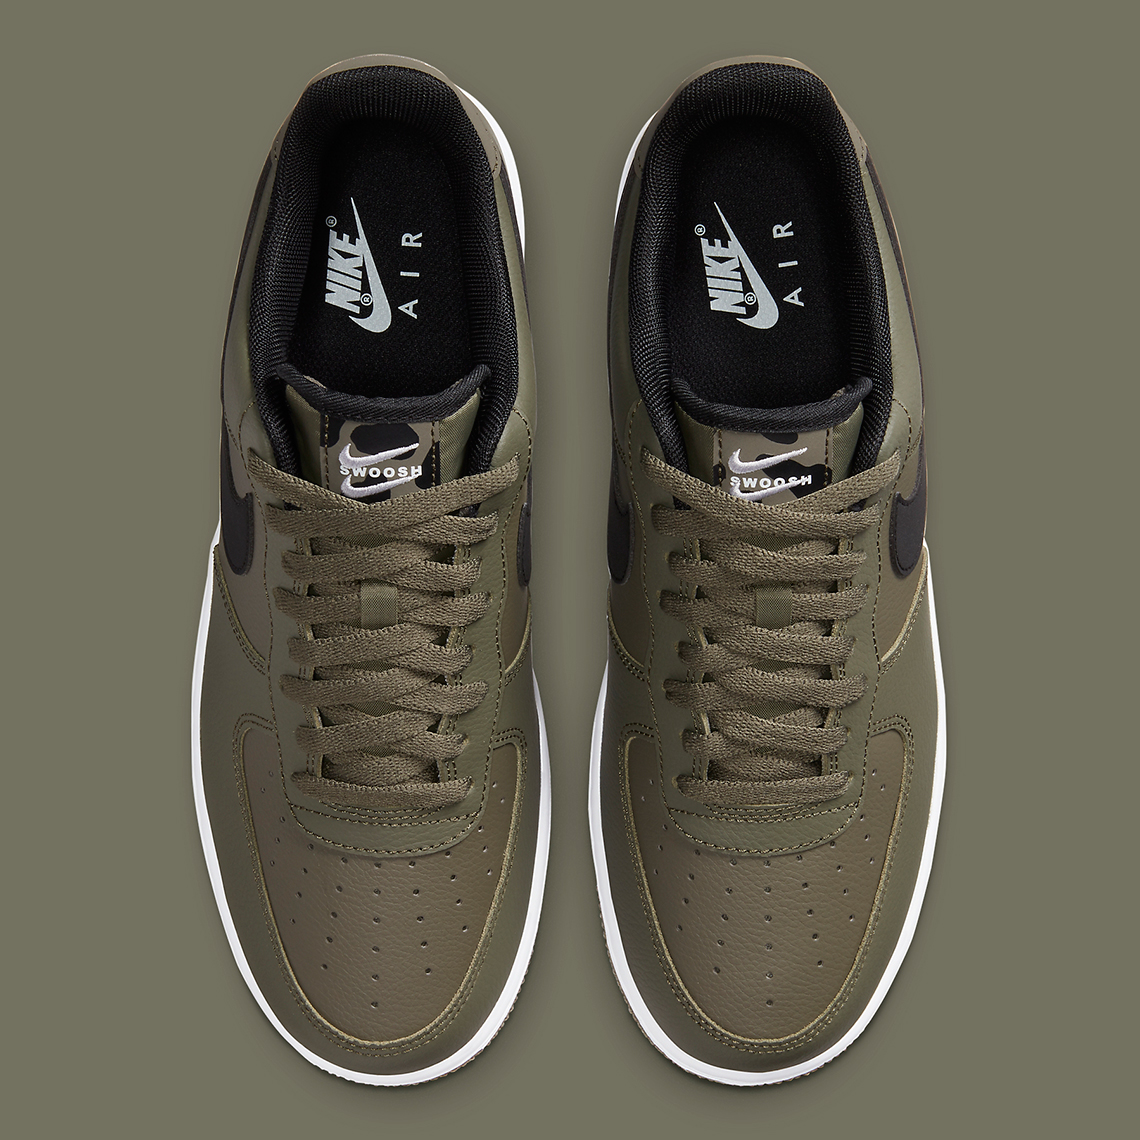 Nike Air Force 1 Low Olive Noir CT2300-300 - Comparaland